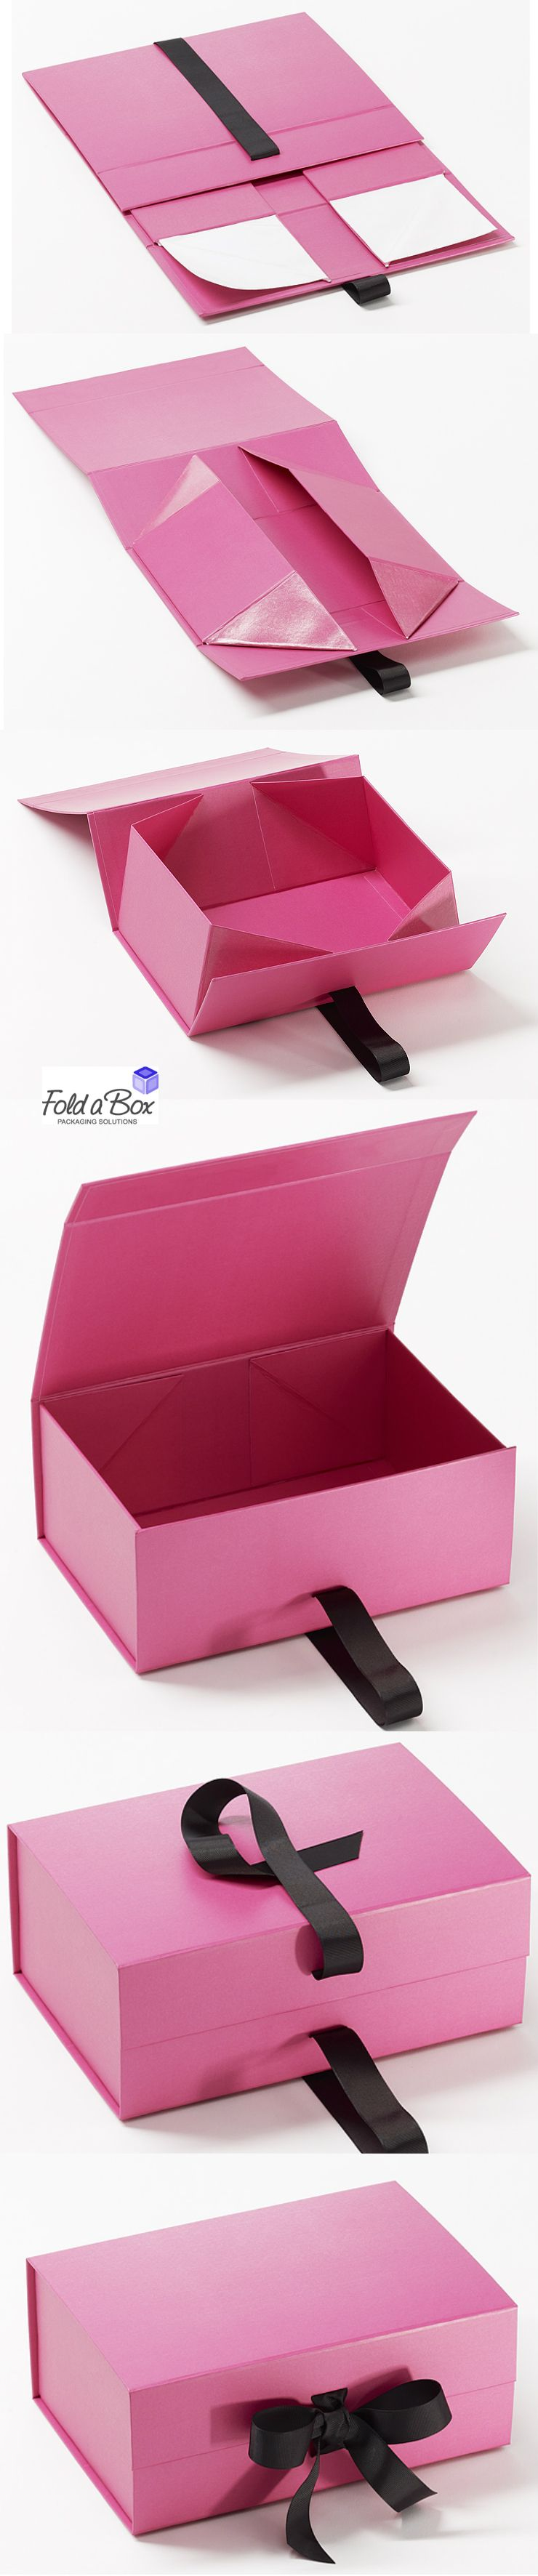 Our high quality gift boxes fold flat for minimal storage. The ...